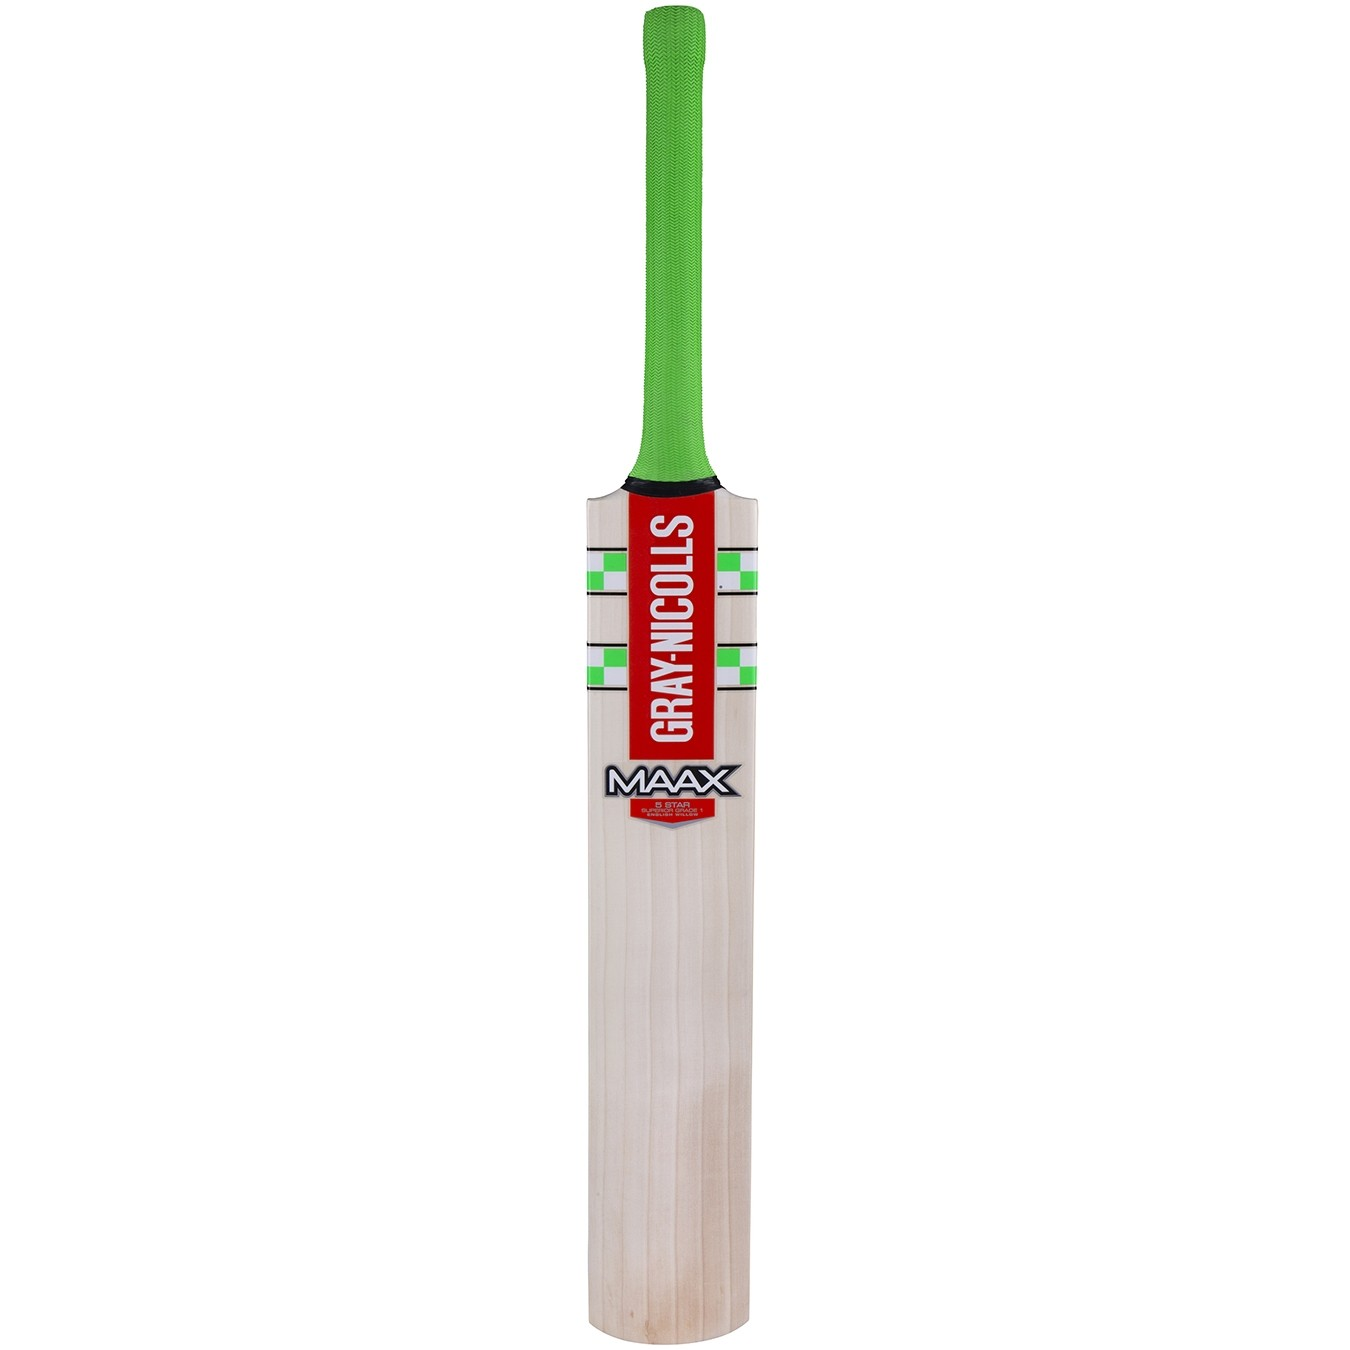 2020 Gray Nicolls Maax 5 Star Cricket Bat